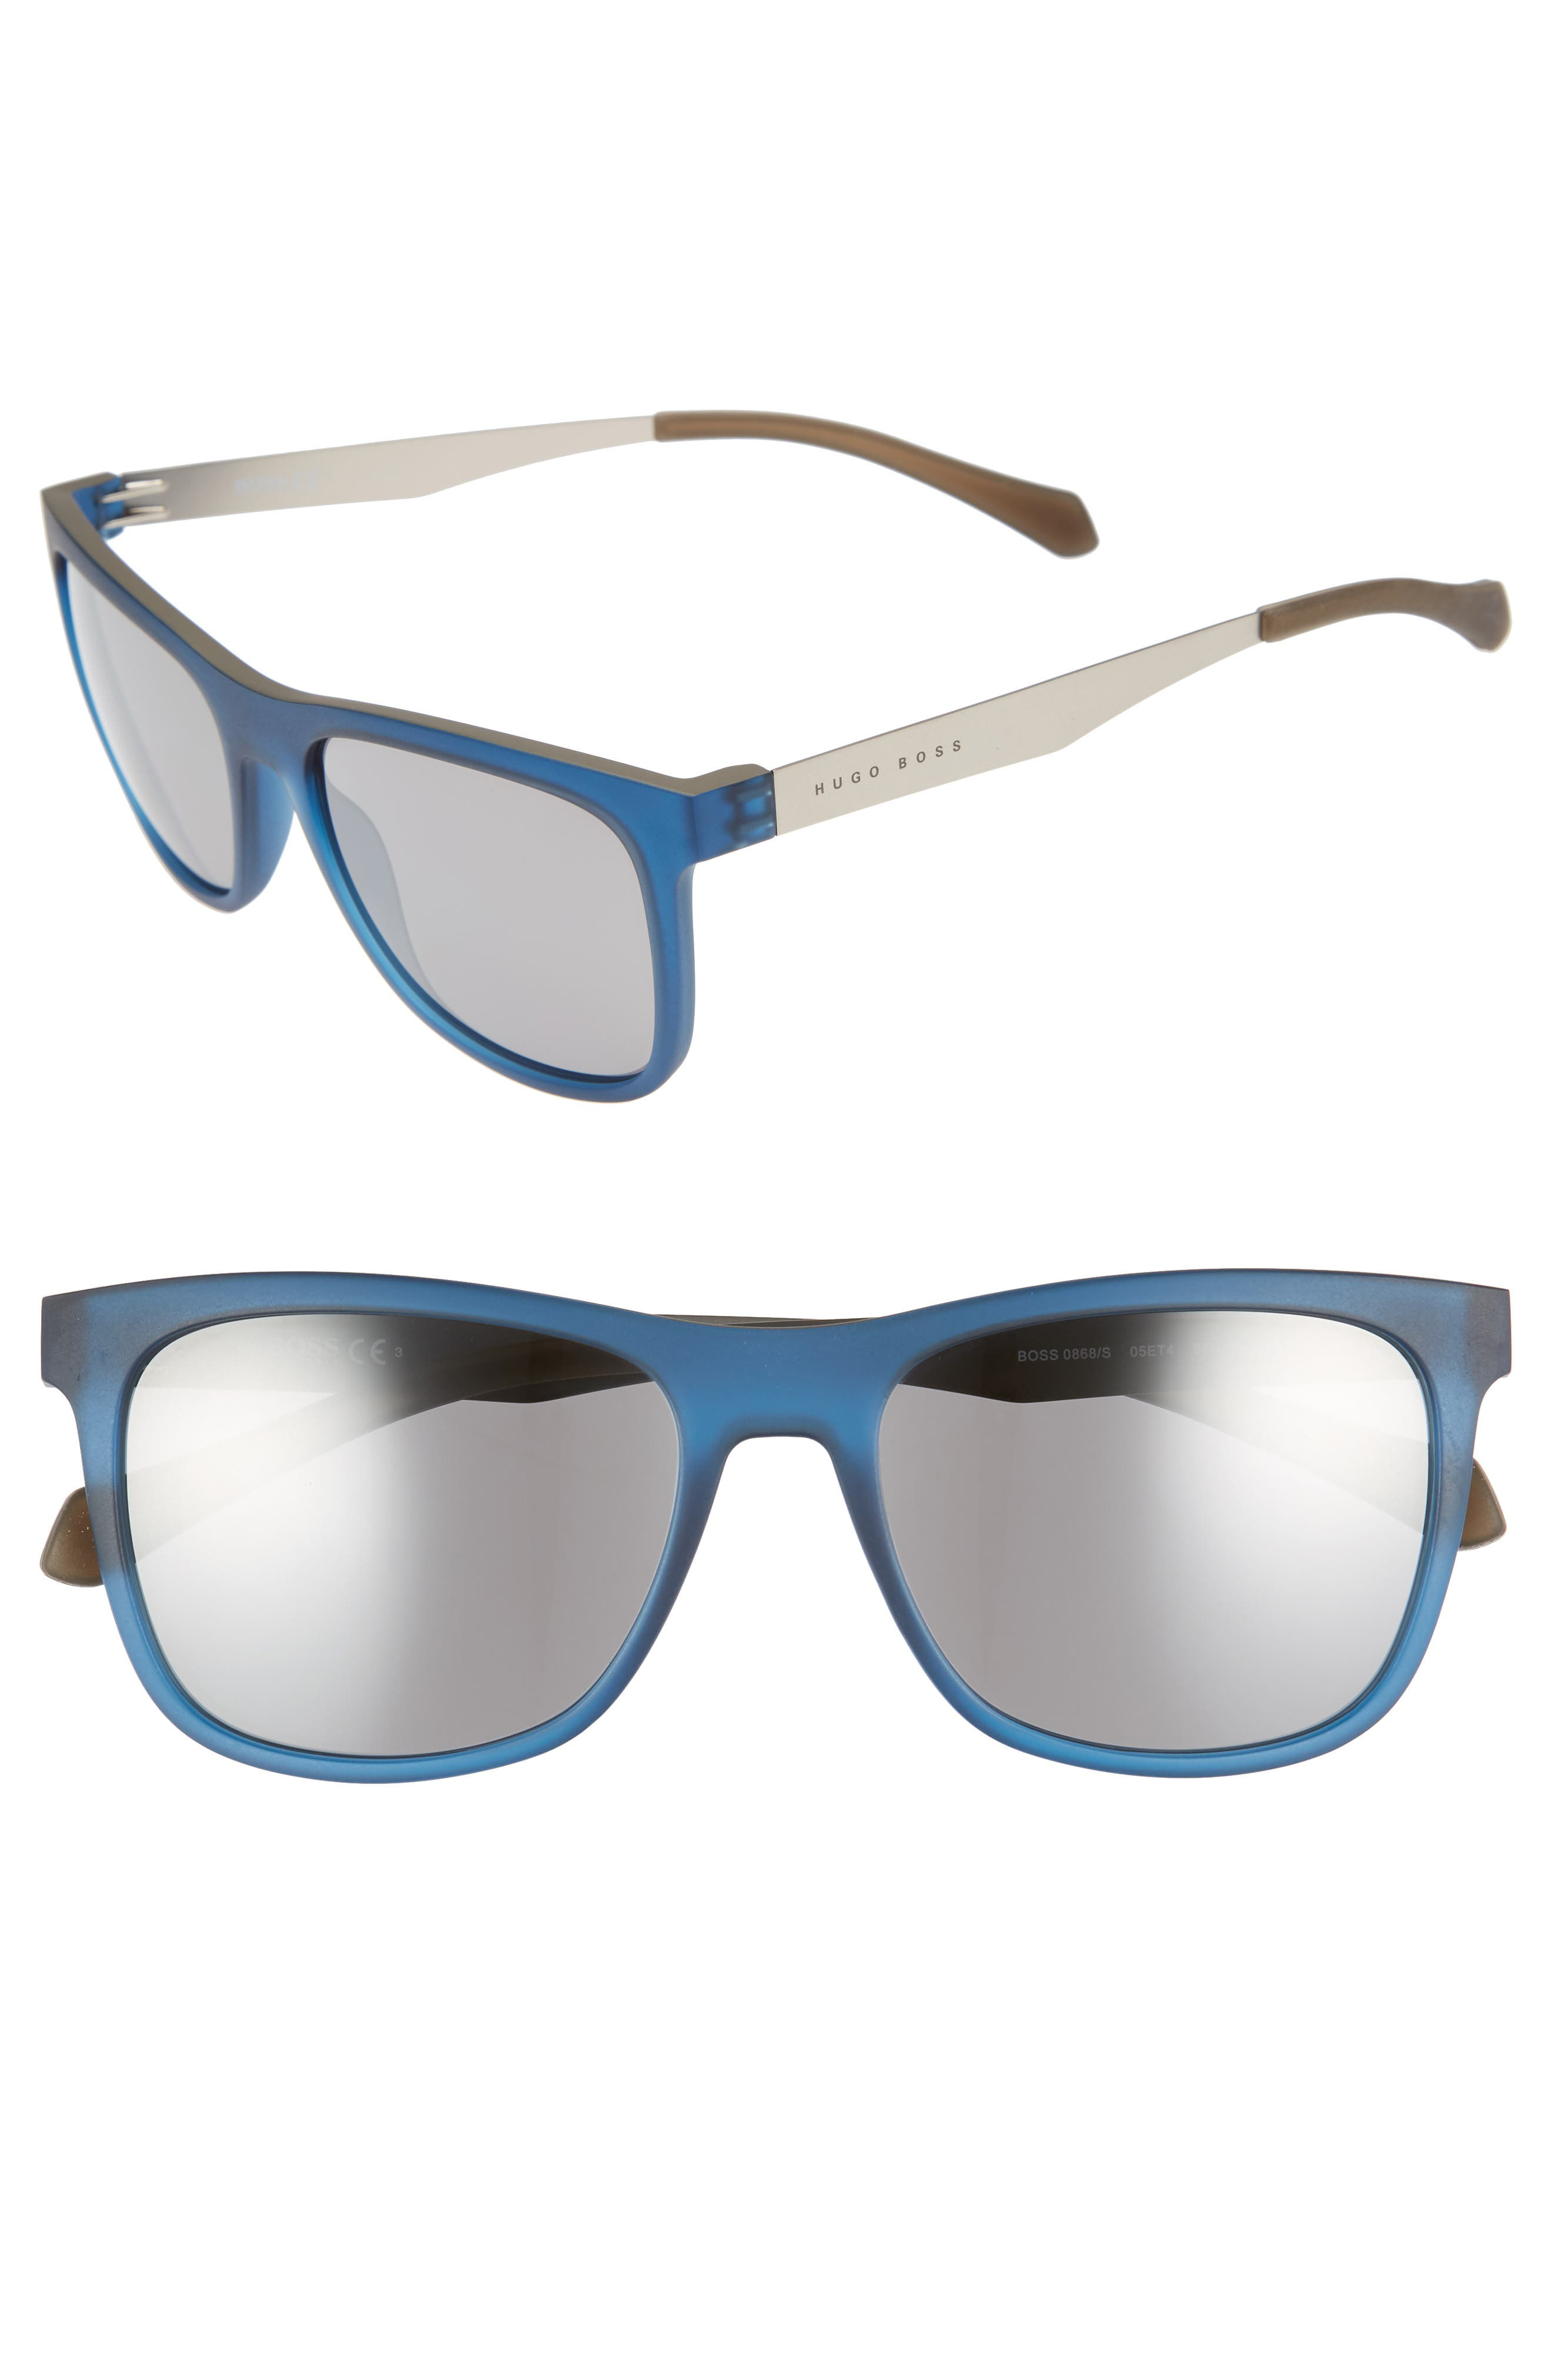 55mm Sunglasses,                         Main,                         color, Matte Blue Beige/ Black